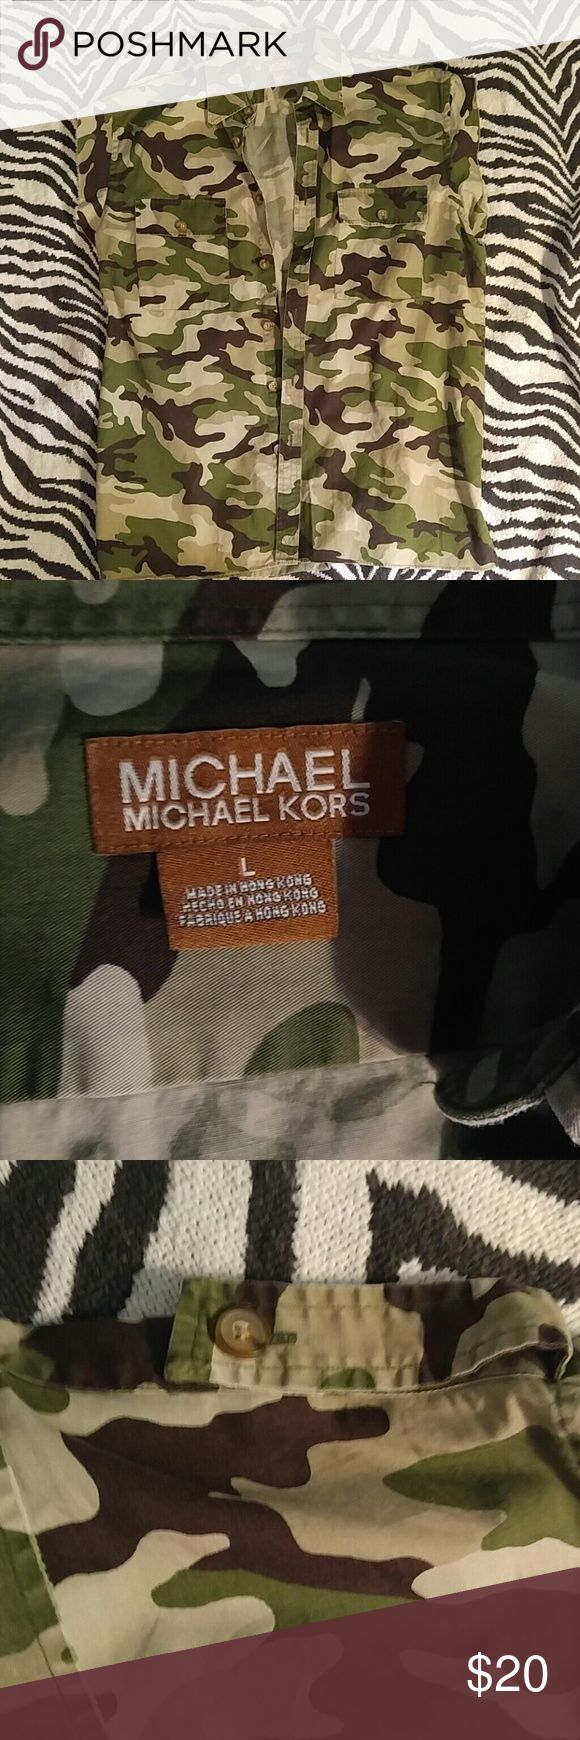 Michael Kors camo vest L Super stylish camo vest from outstanding designer Michael Kors available at a great price! Fantastic condition! Michael Kors Shirts